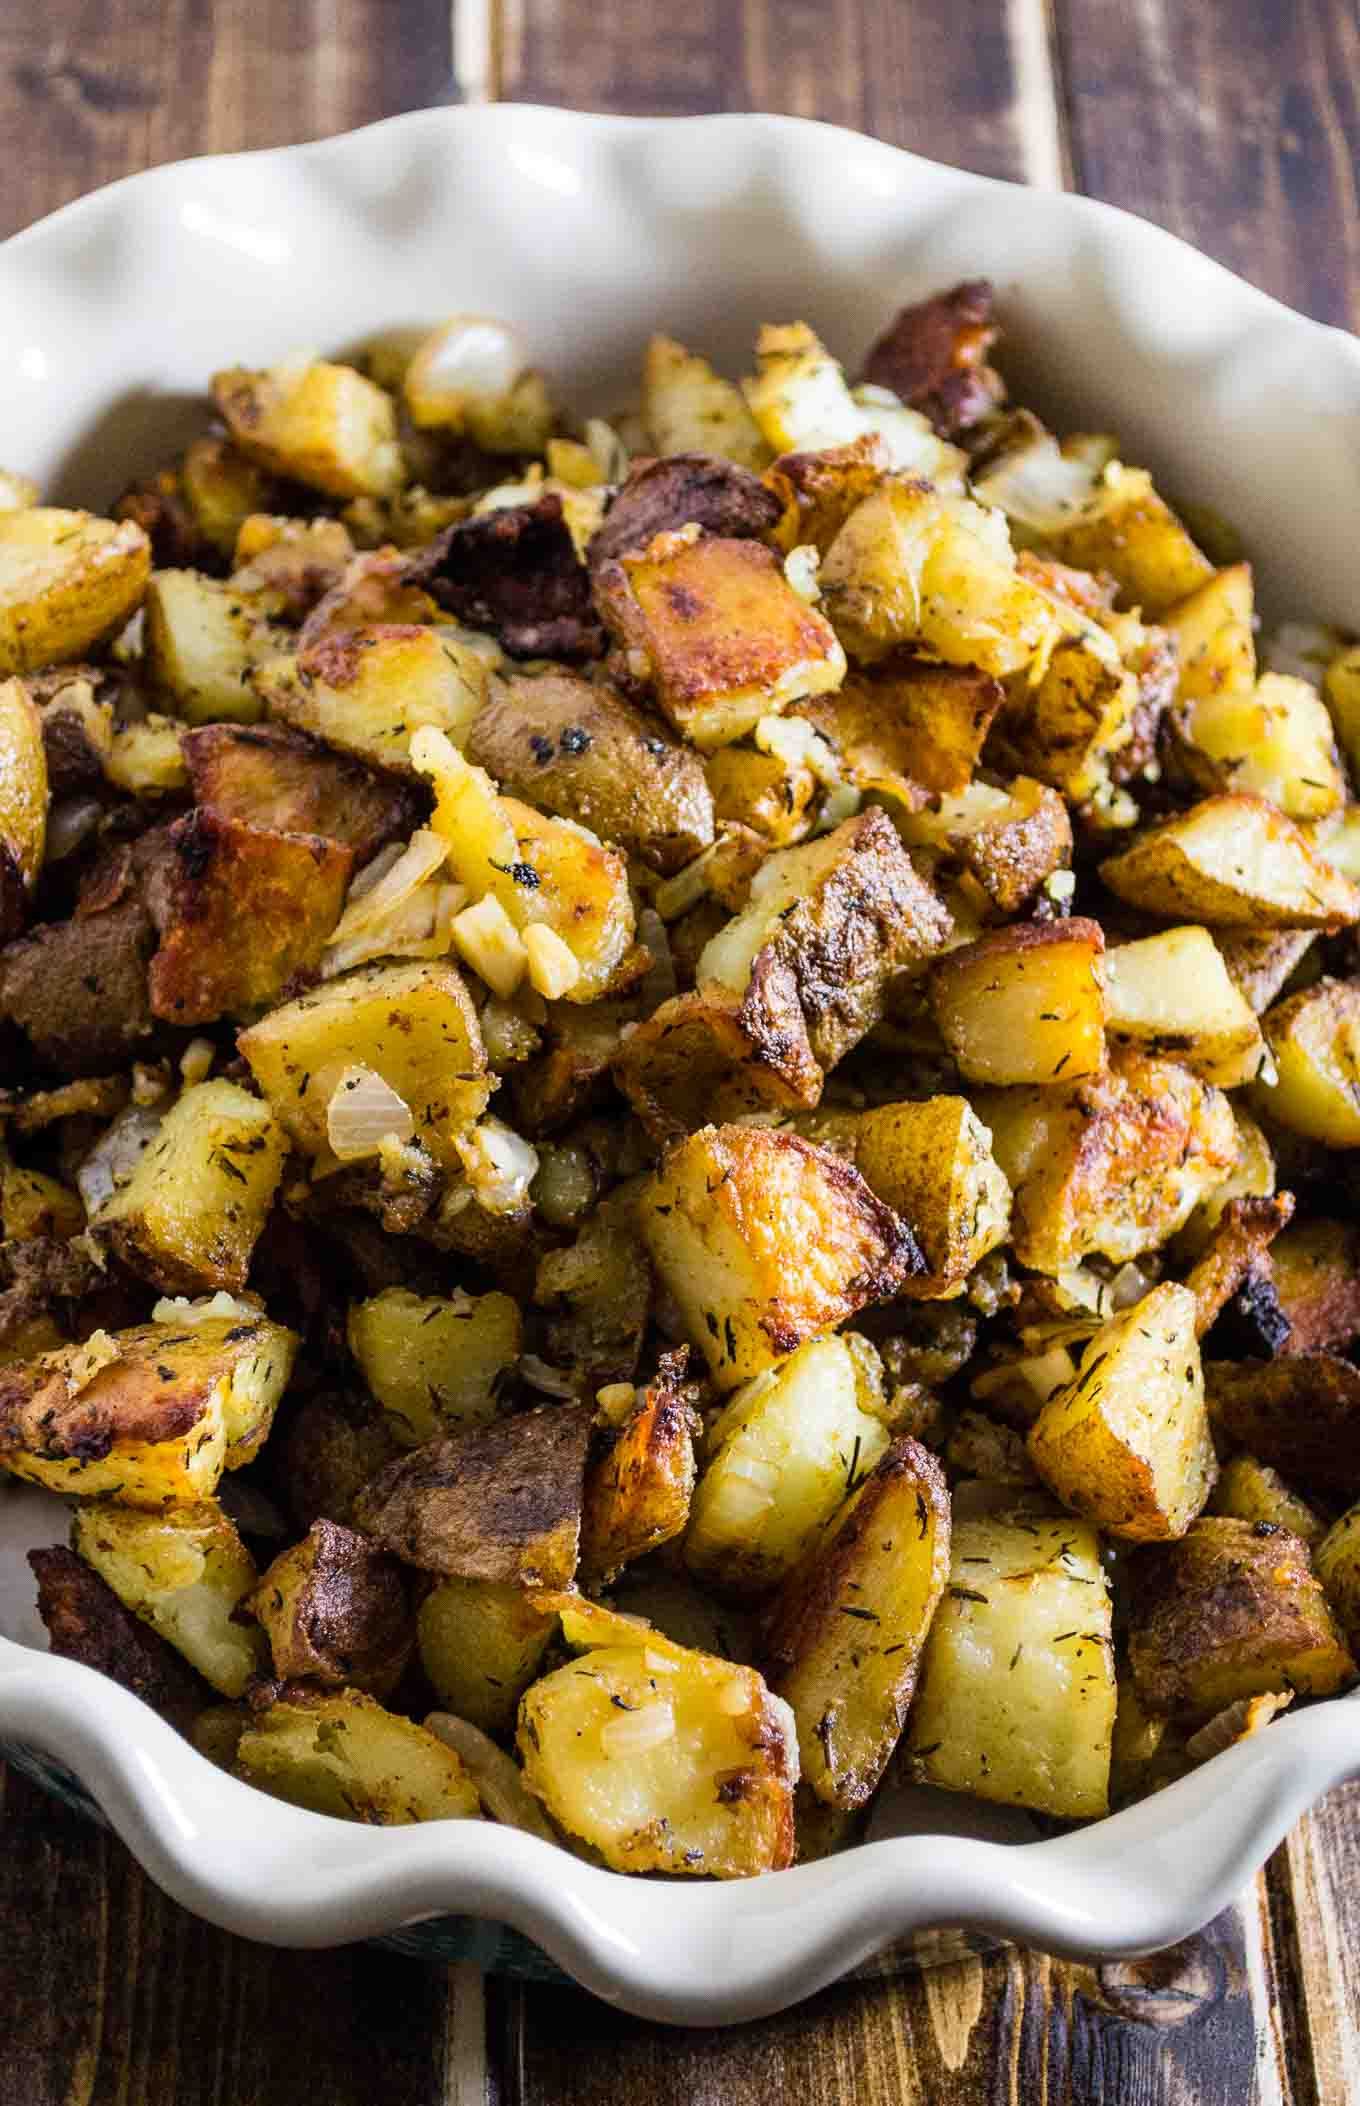 Famous crispy potato casserole – I always take this to family events and everyone LOVES it! Seriously the best of vegan potato recipes. #potatocasserole #vegan #veganpotatorecipe #veganpotatocasserole #dinner #dinnerrecipe #sidedish